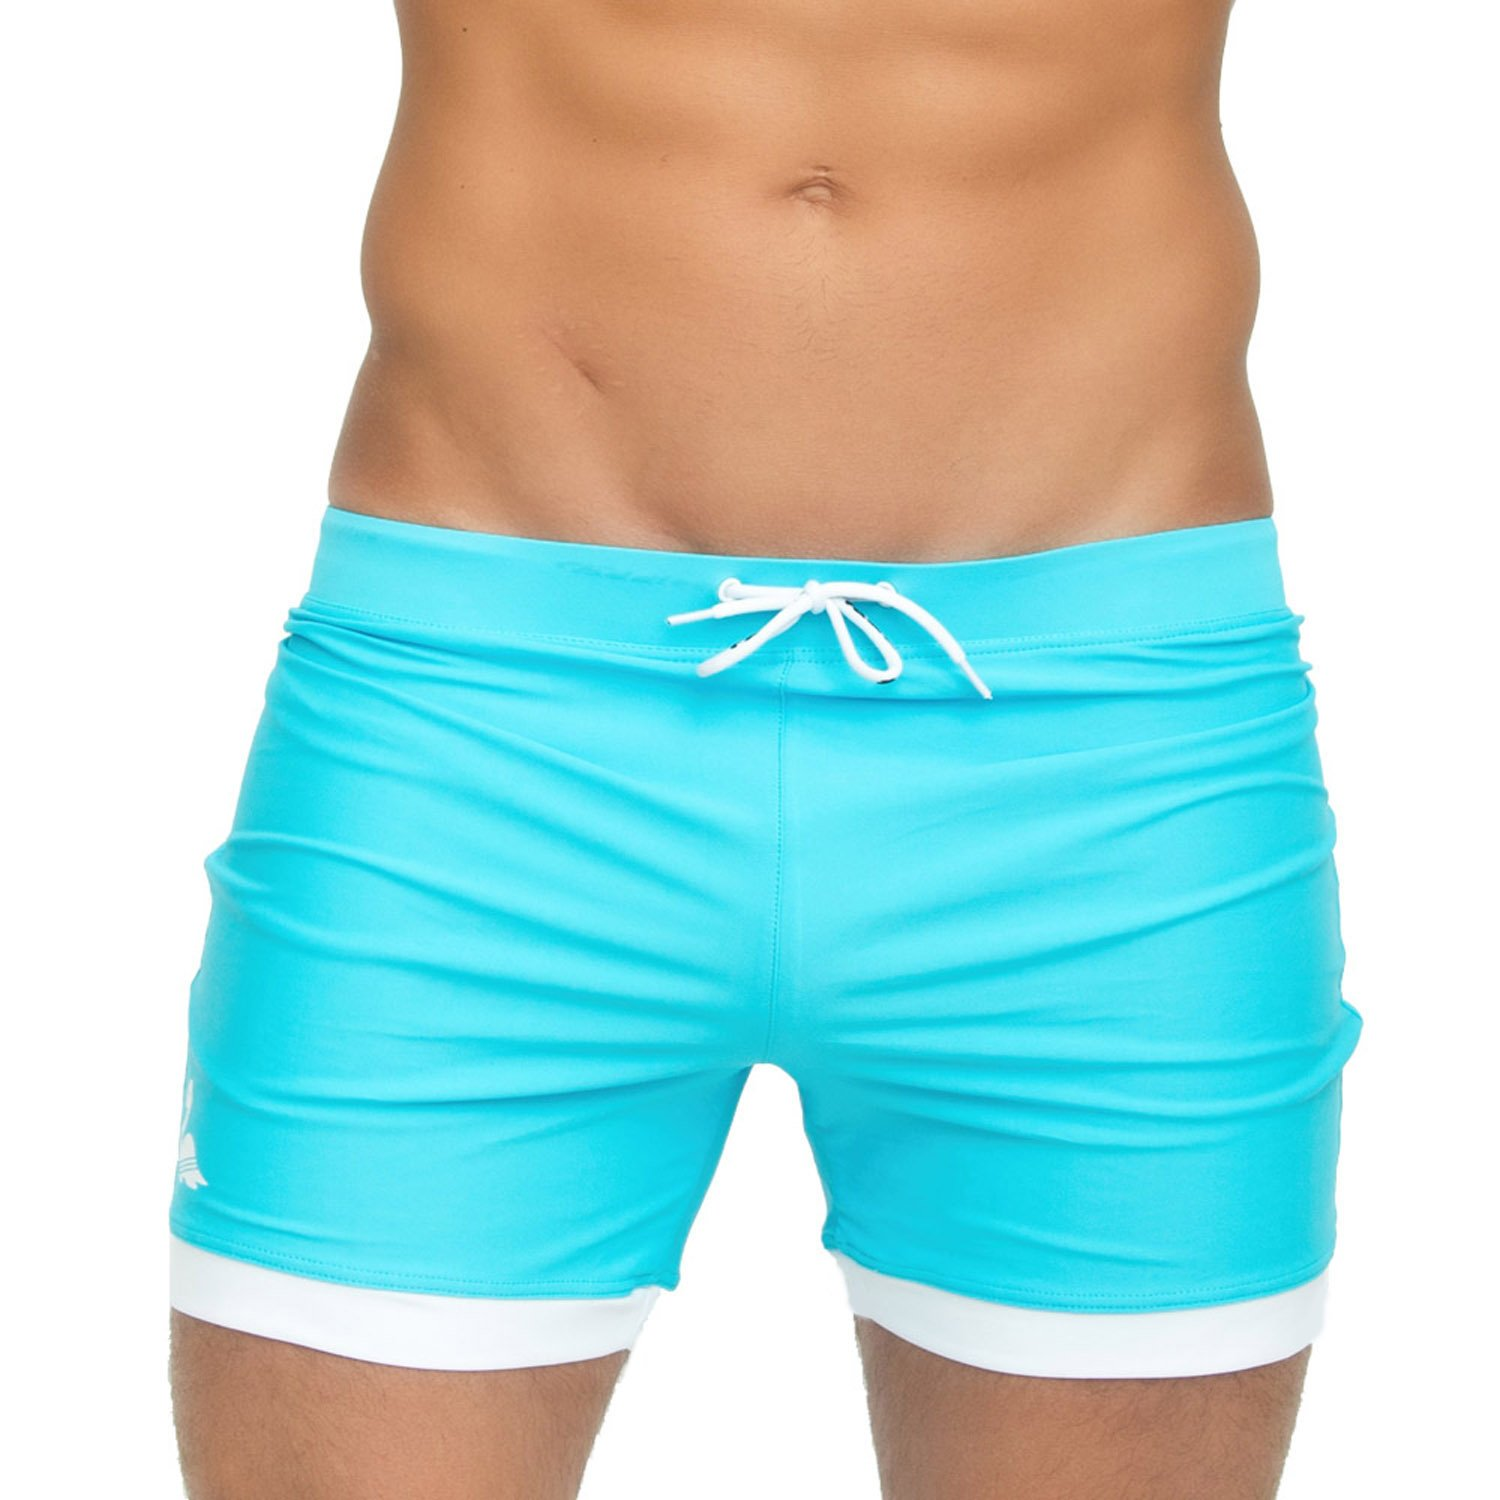 Taddlee Men Swimwear Solid Basic Long Swim Boxer Trunks Board Shorts Swimsuits Foshan Xiongfeng Clothing Co. Ltd